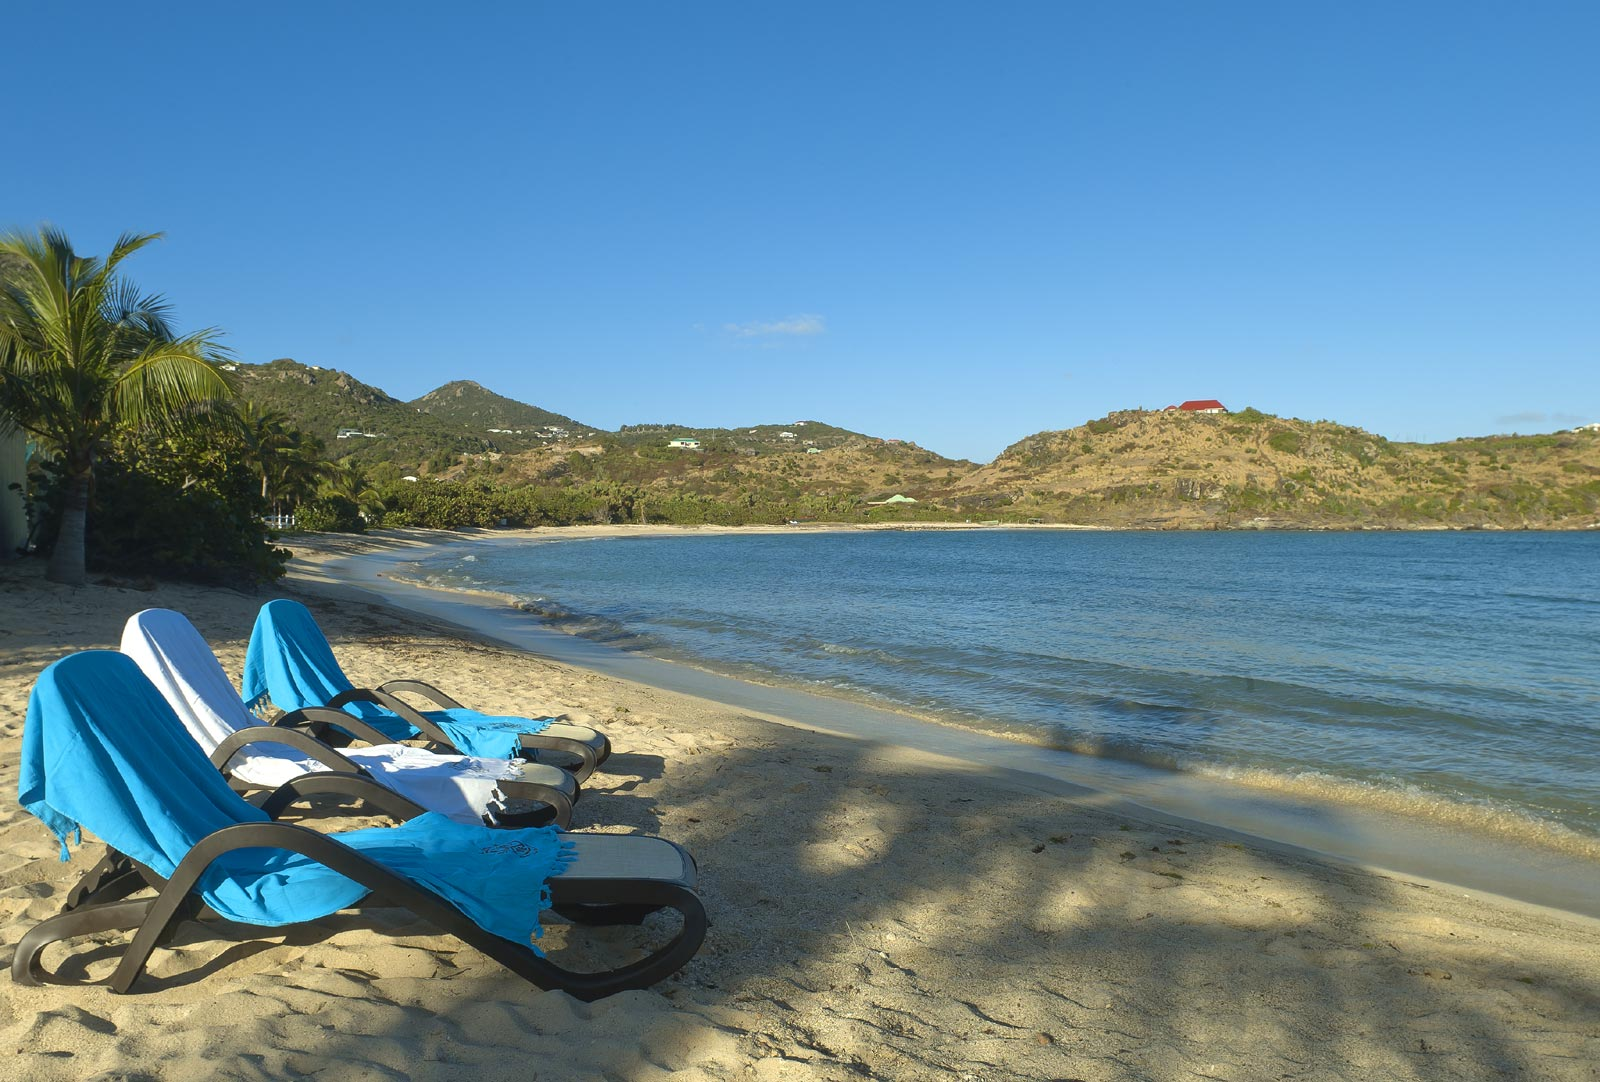 The beautiful, private beach of Petit Cul de Sac, St. Barts, Caribbean.